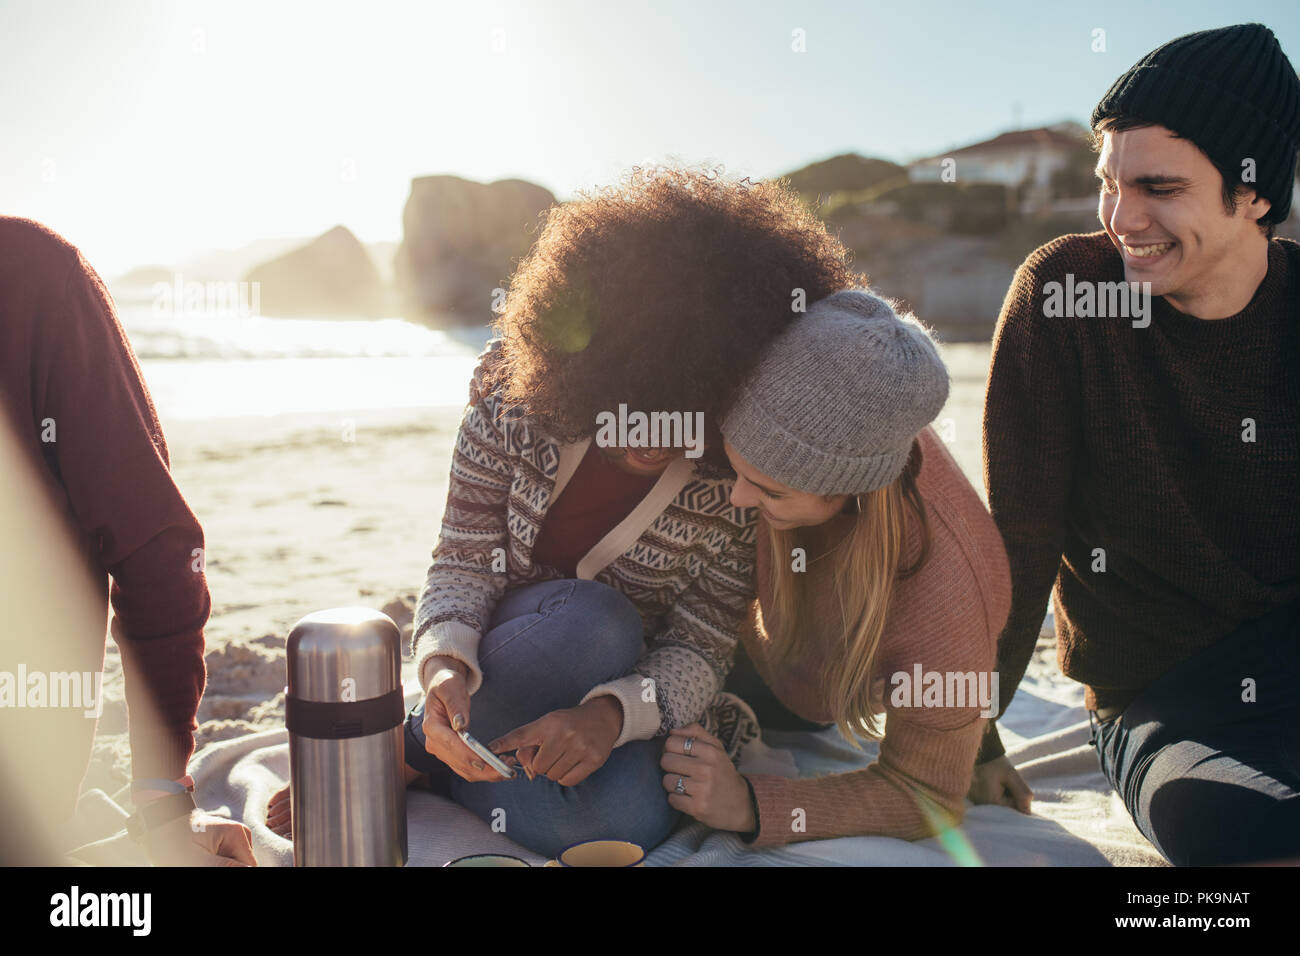 Two young woman sitting on the beach looking something funny on mobile phone and smiling with a friends sitting by. Group of young people relaxing on  Stock Photo